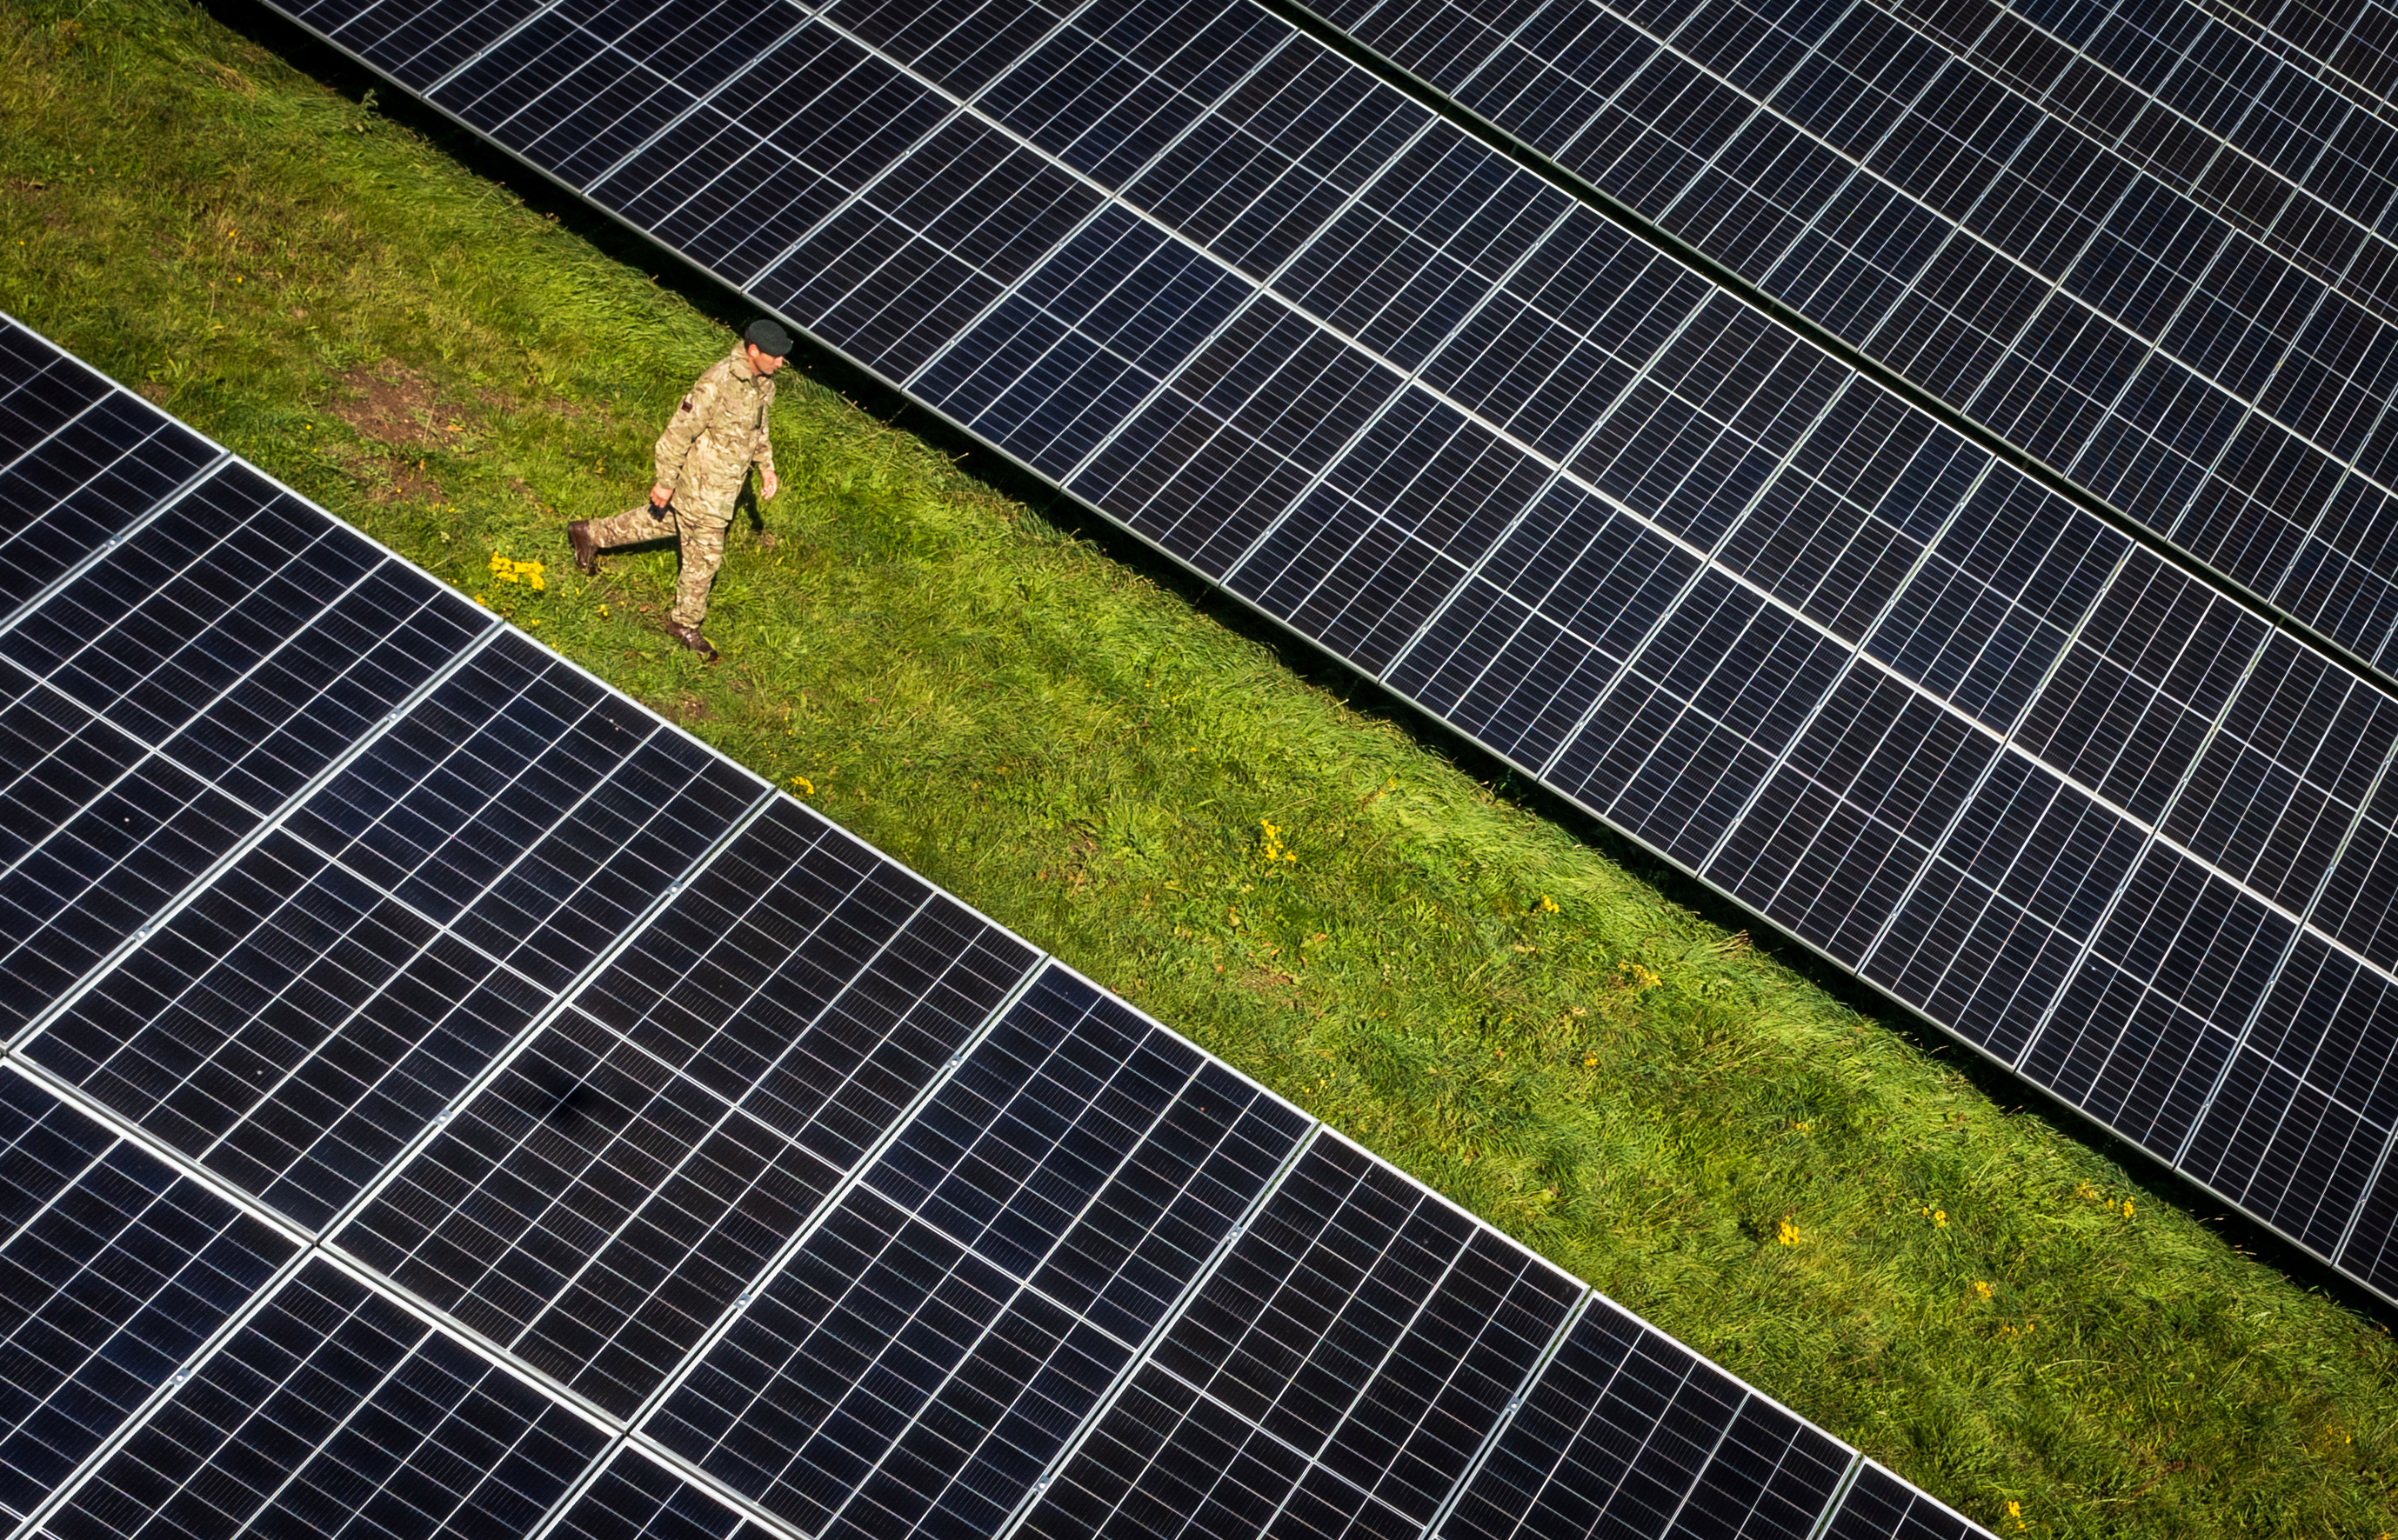 <p>Major David Owen walks through a field of solar panels at the opening of the British Army's first ever solar farm, part of Project PROMETHEUS at the Defence School of Transport (DST), Normandy Barracks, in Leconfield, in the East Riding of Yorkshire. Picture date: Wednesday September 29, 2021.</p>